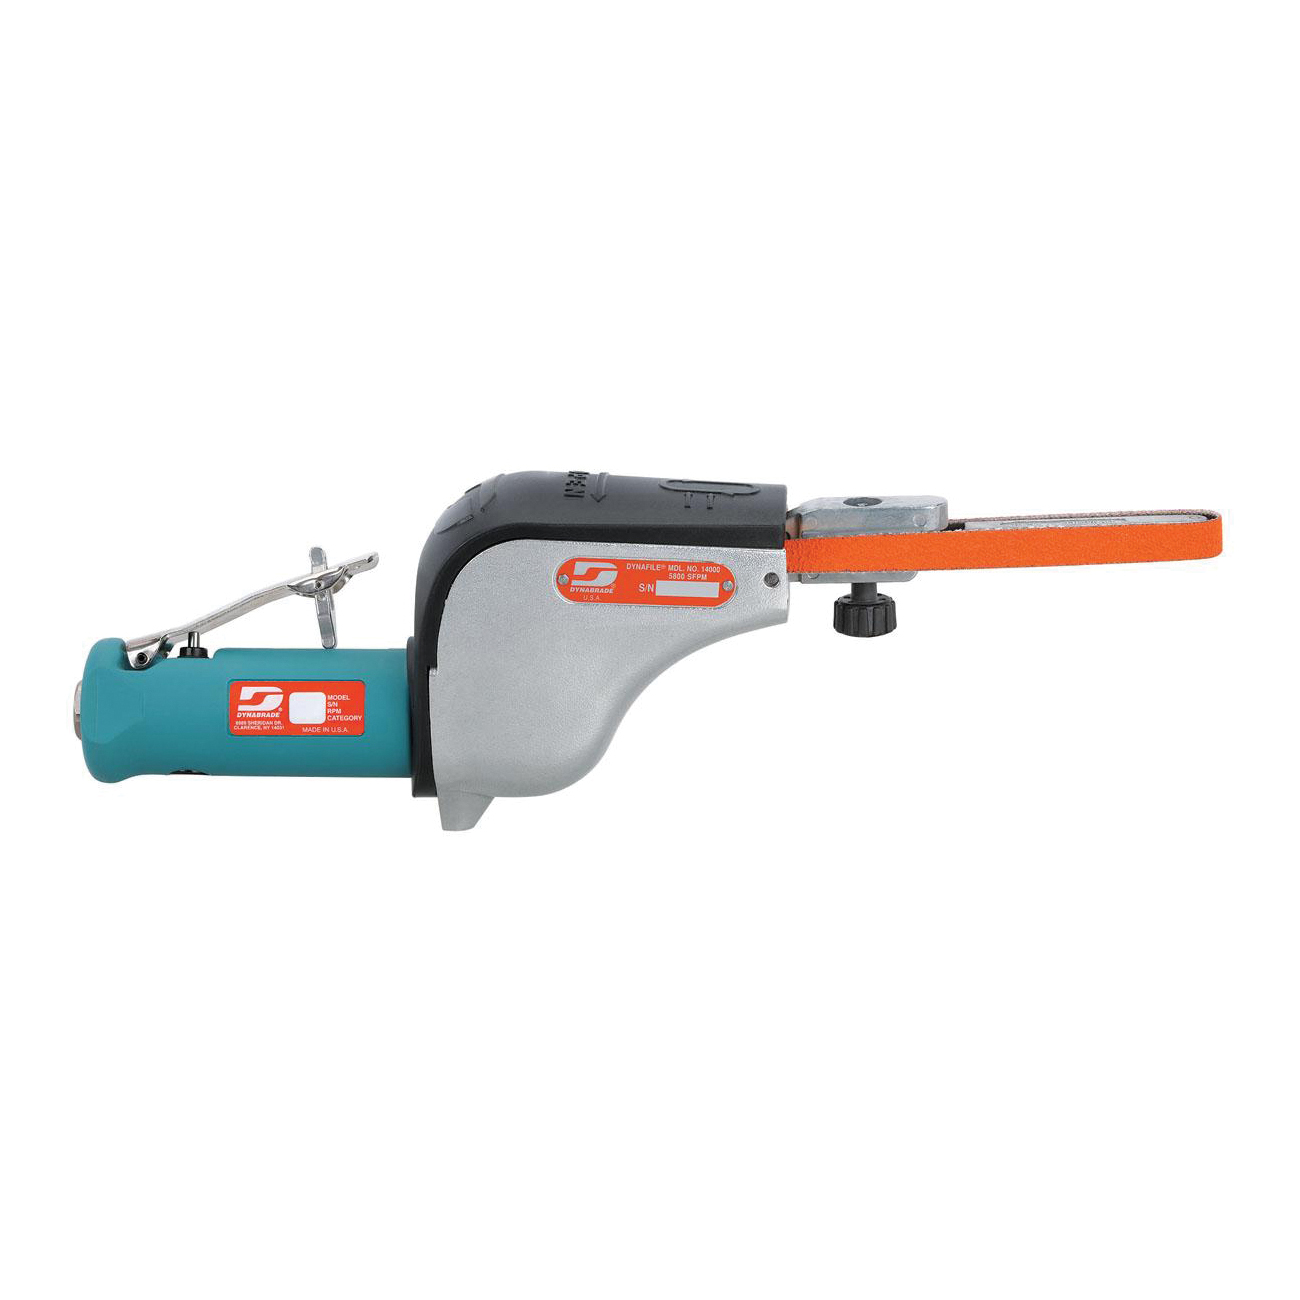 Dynabrade® Dynafile® 14000 Straight Line Abrasive Belt Tool, 1/8 to 1/2 in W x 24 in L, 0.5 hp, 31 scfm Air Flow, 90 psi